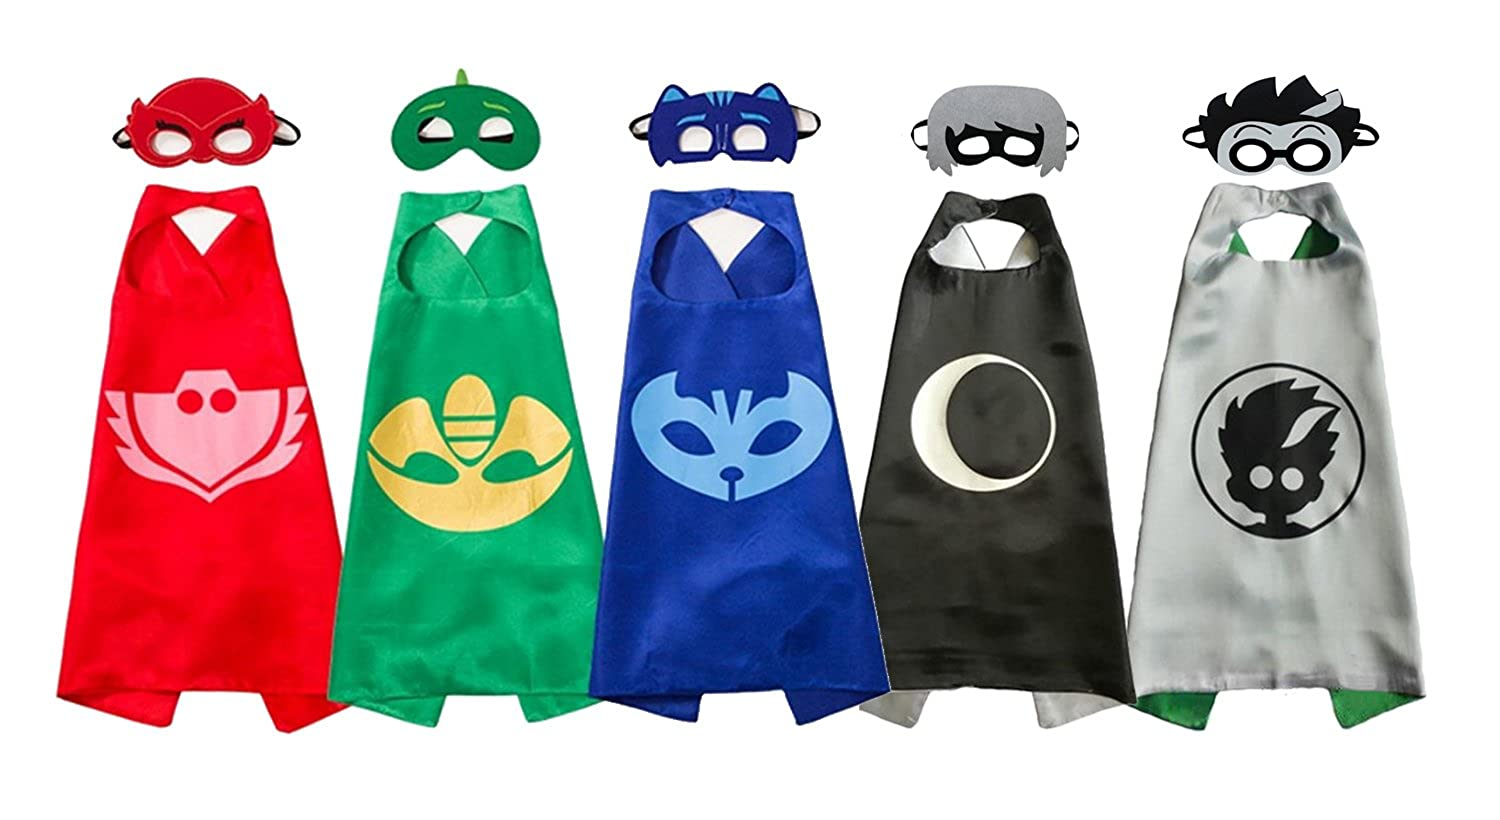 Amazon.com: Uunic PJ Masks Costumes 5 Capes and Masks For Catboy Owlette Gekko Romeo Luna Girl: Clothing